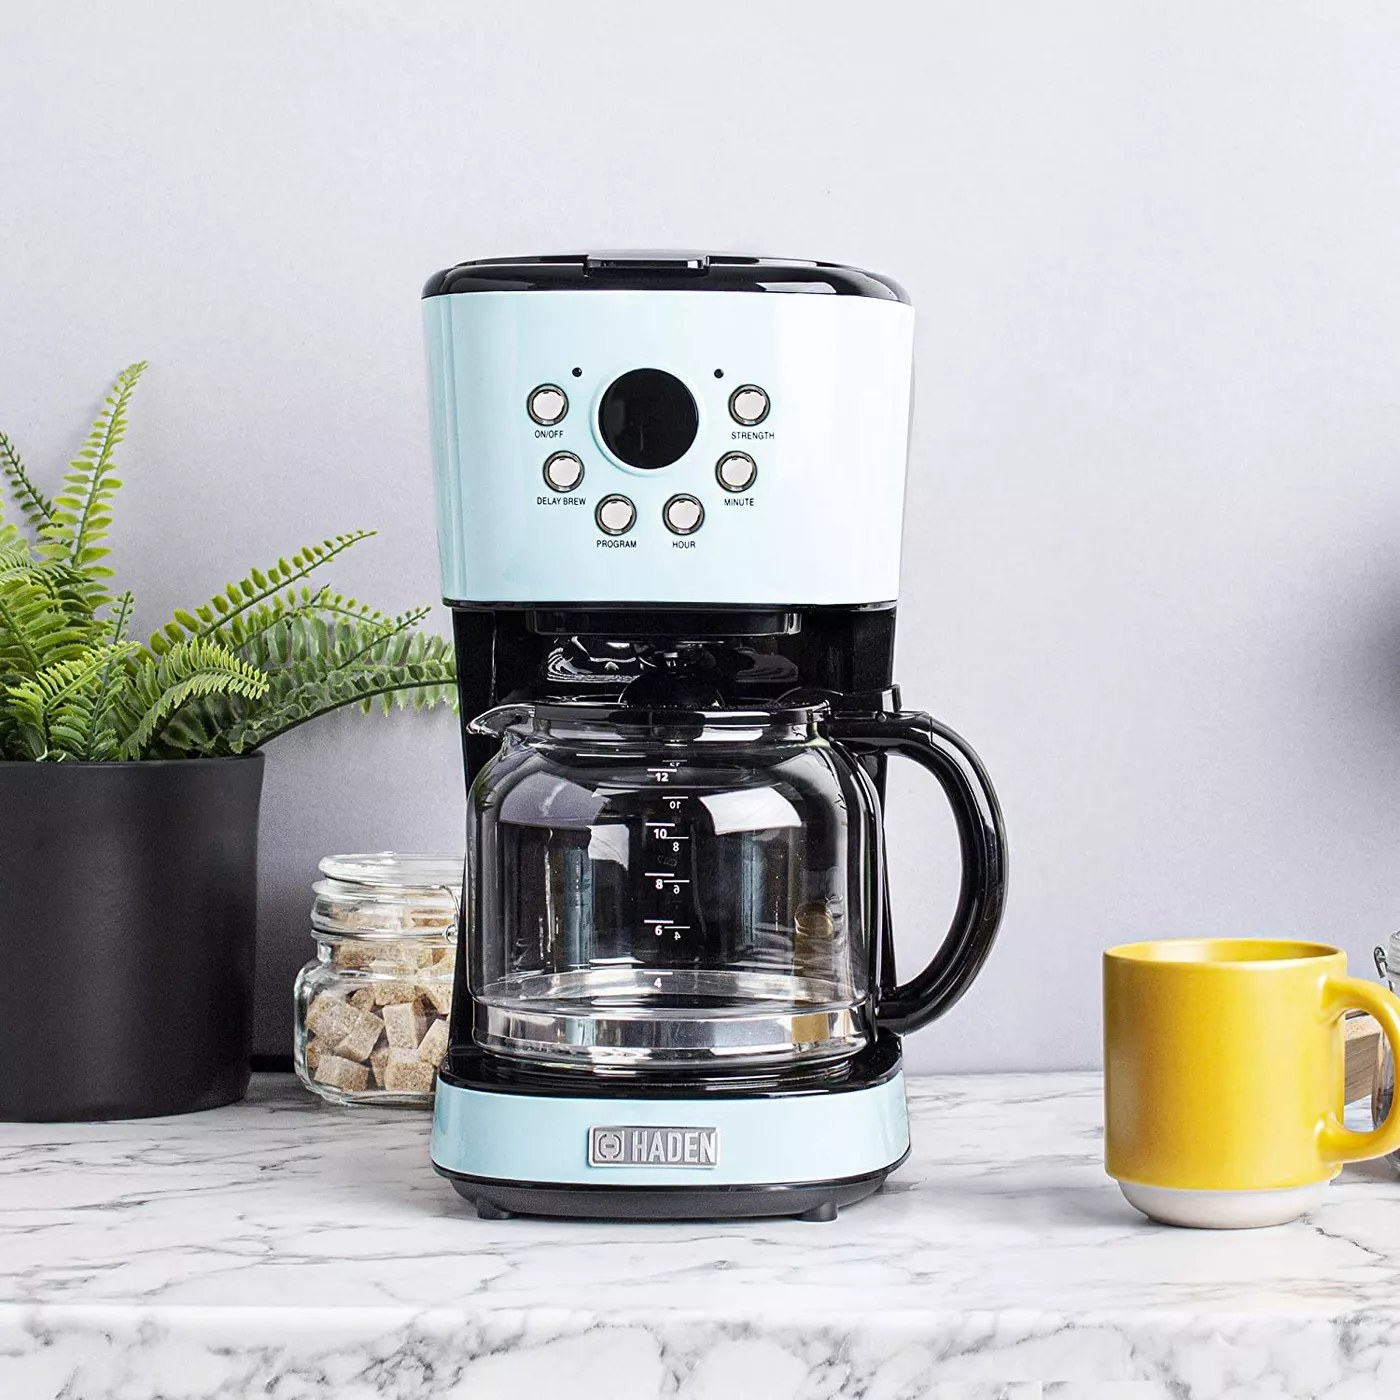 The coffee maker displayed on marble countertop